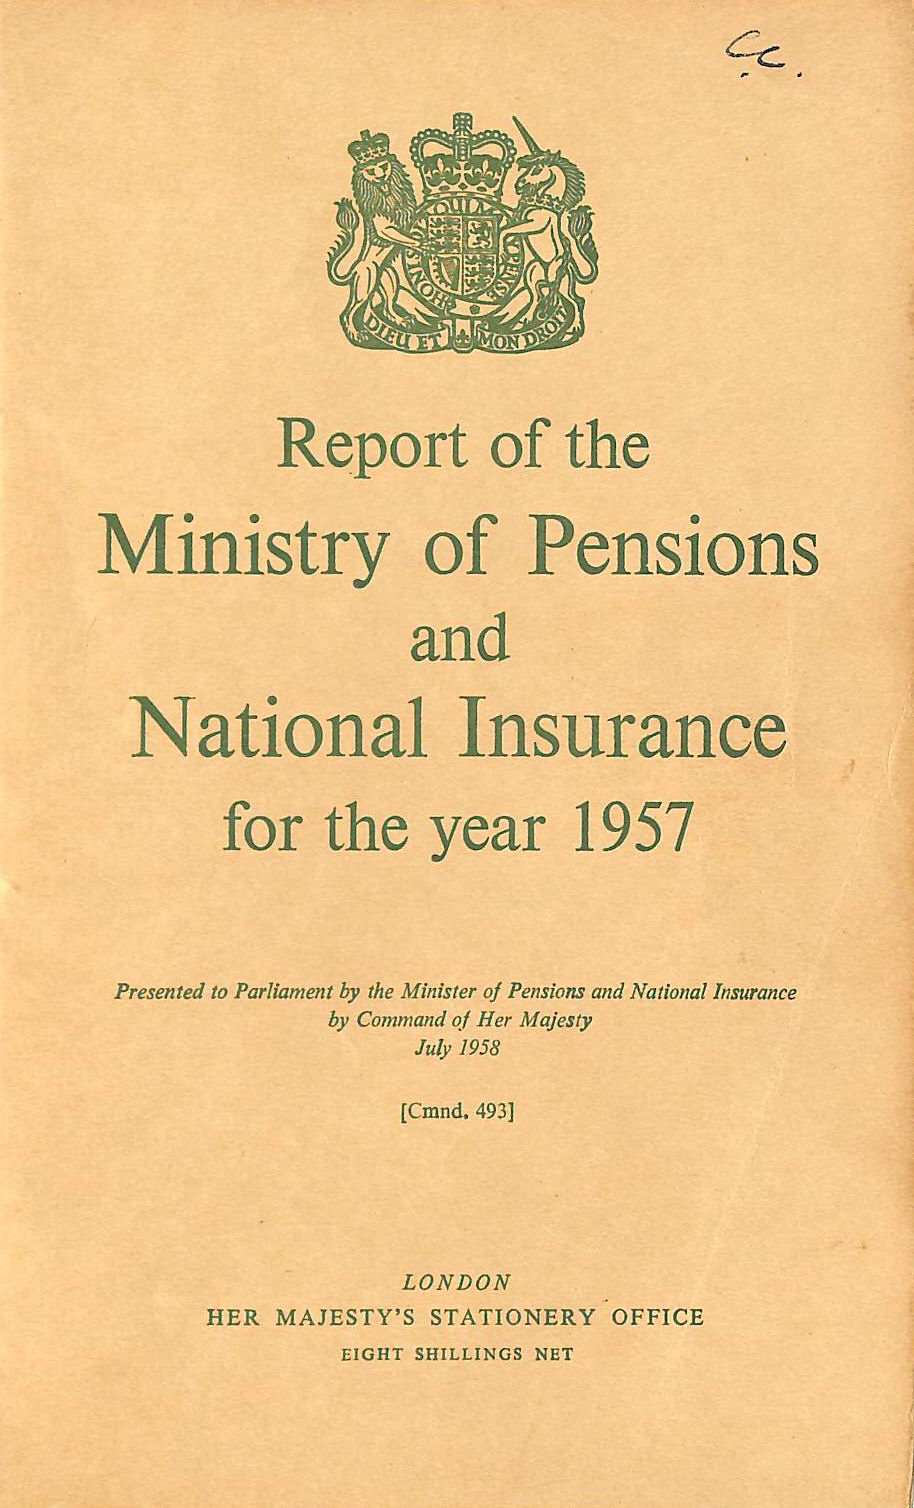 Image for Report of the Ministry of Pensions and National Insurance 1957